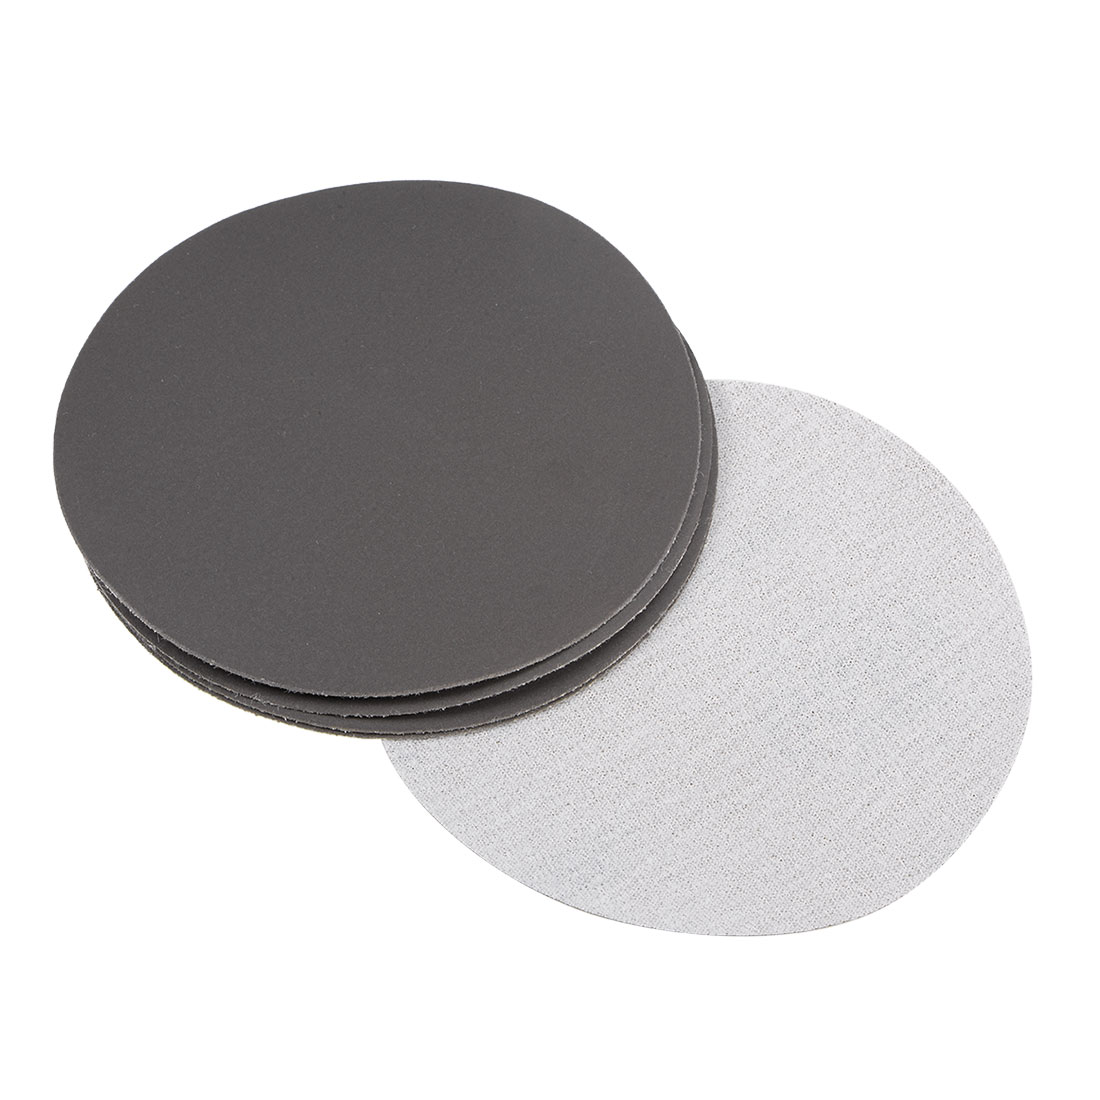 5 inch Wet Dry Discs 1000 Grit Hook and Loop Sanding Disc Silicon Carbide 5pcs